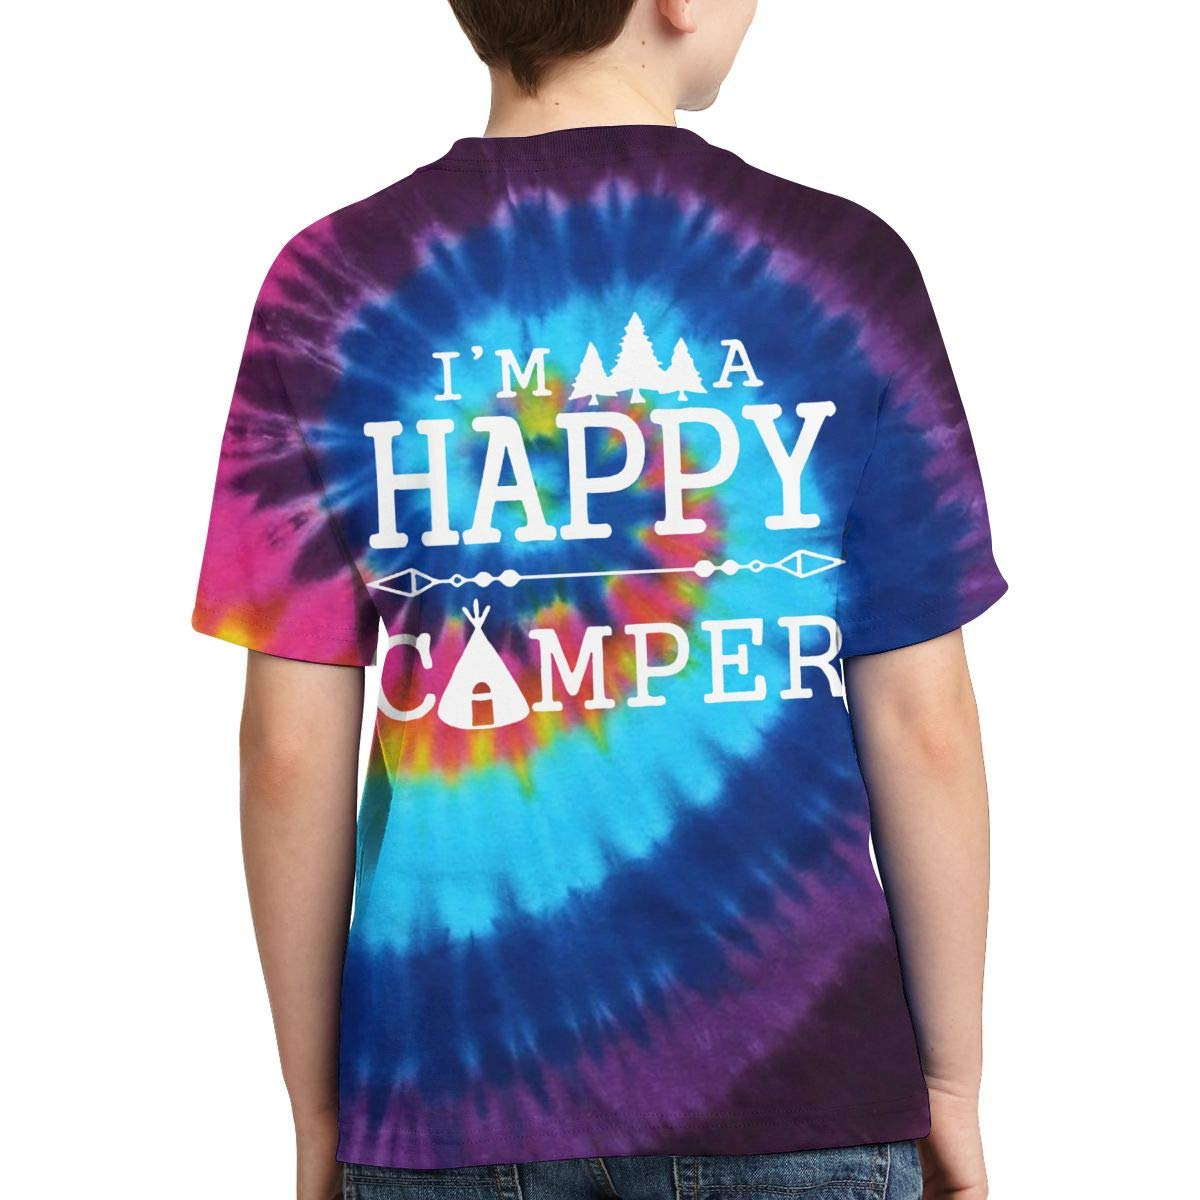 AMODECO Happy Camper 3D Printed Tee T-Shirt for Youth Teenager Boys Girls